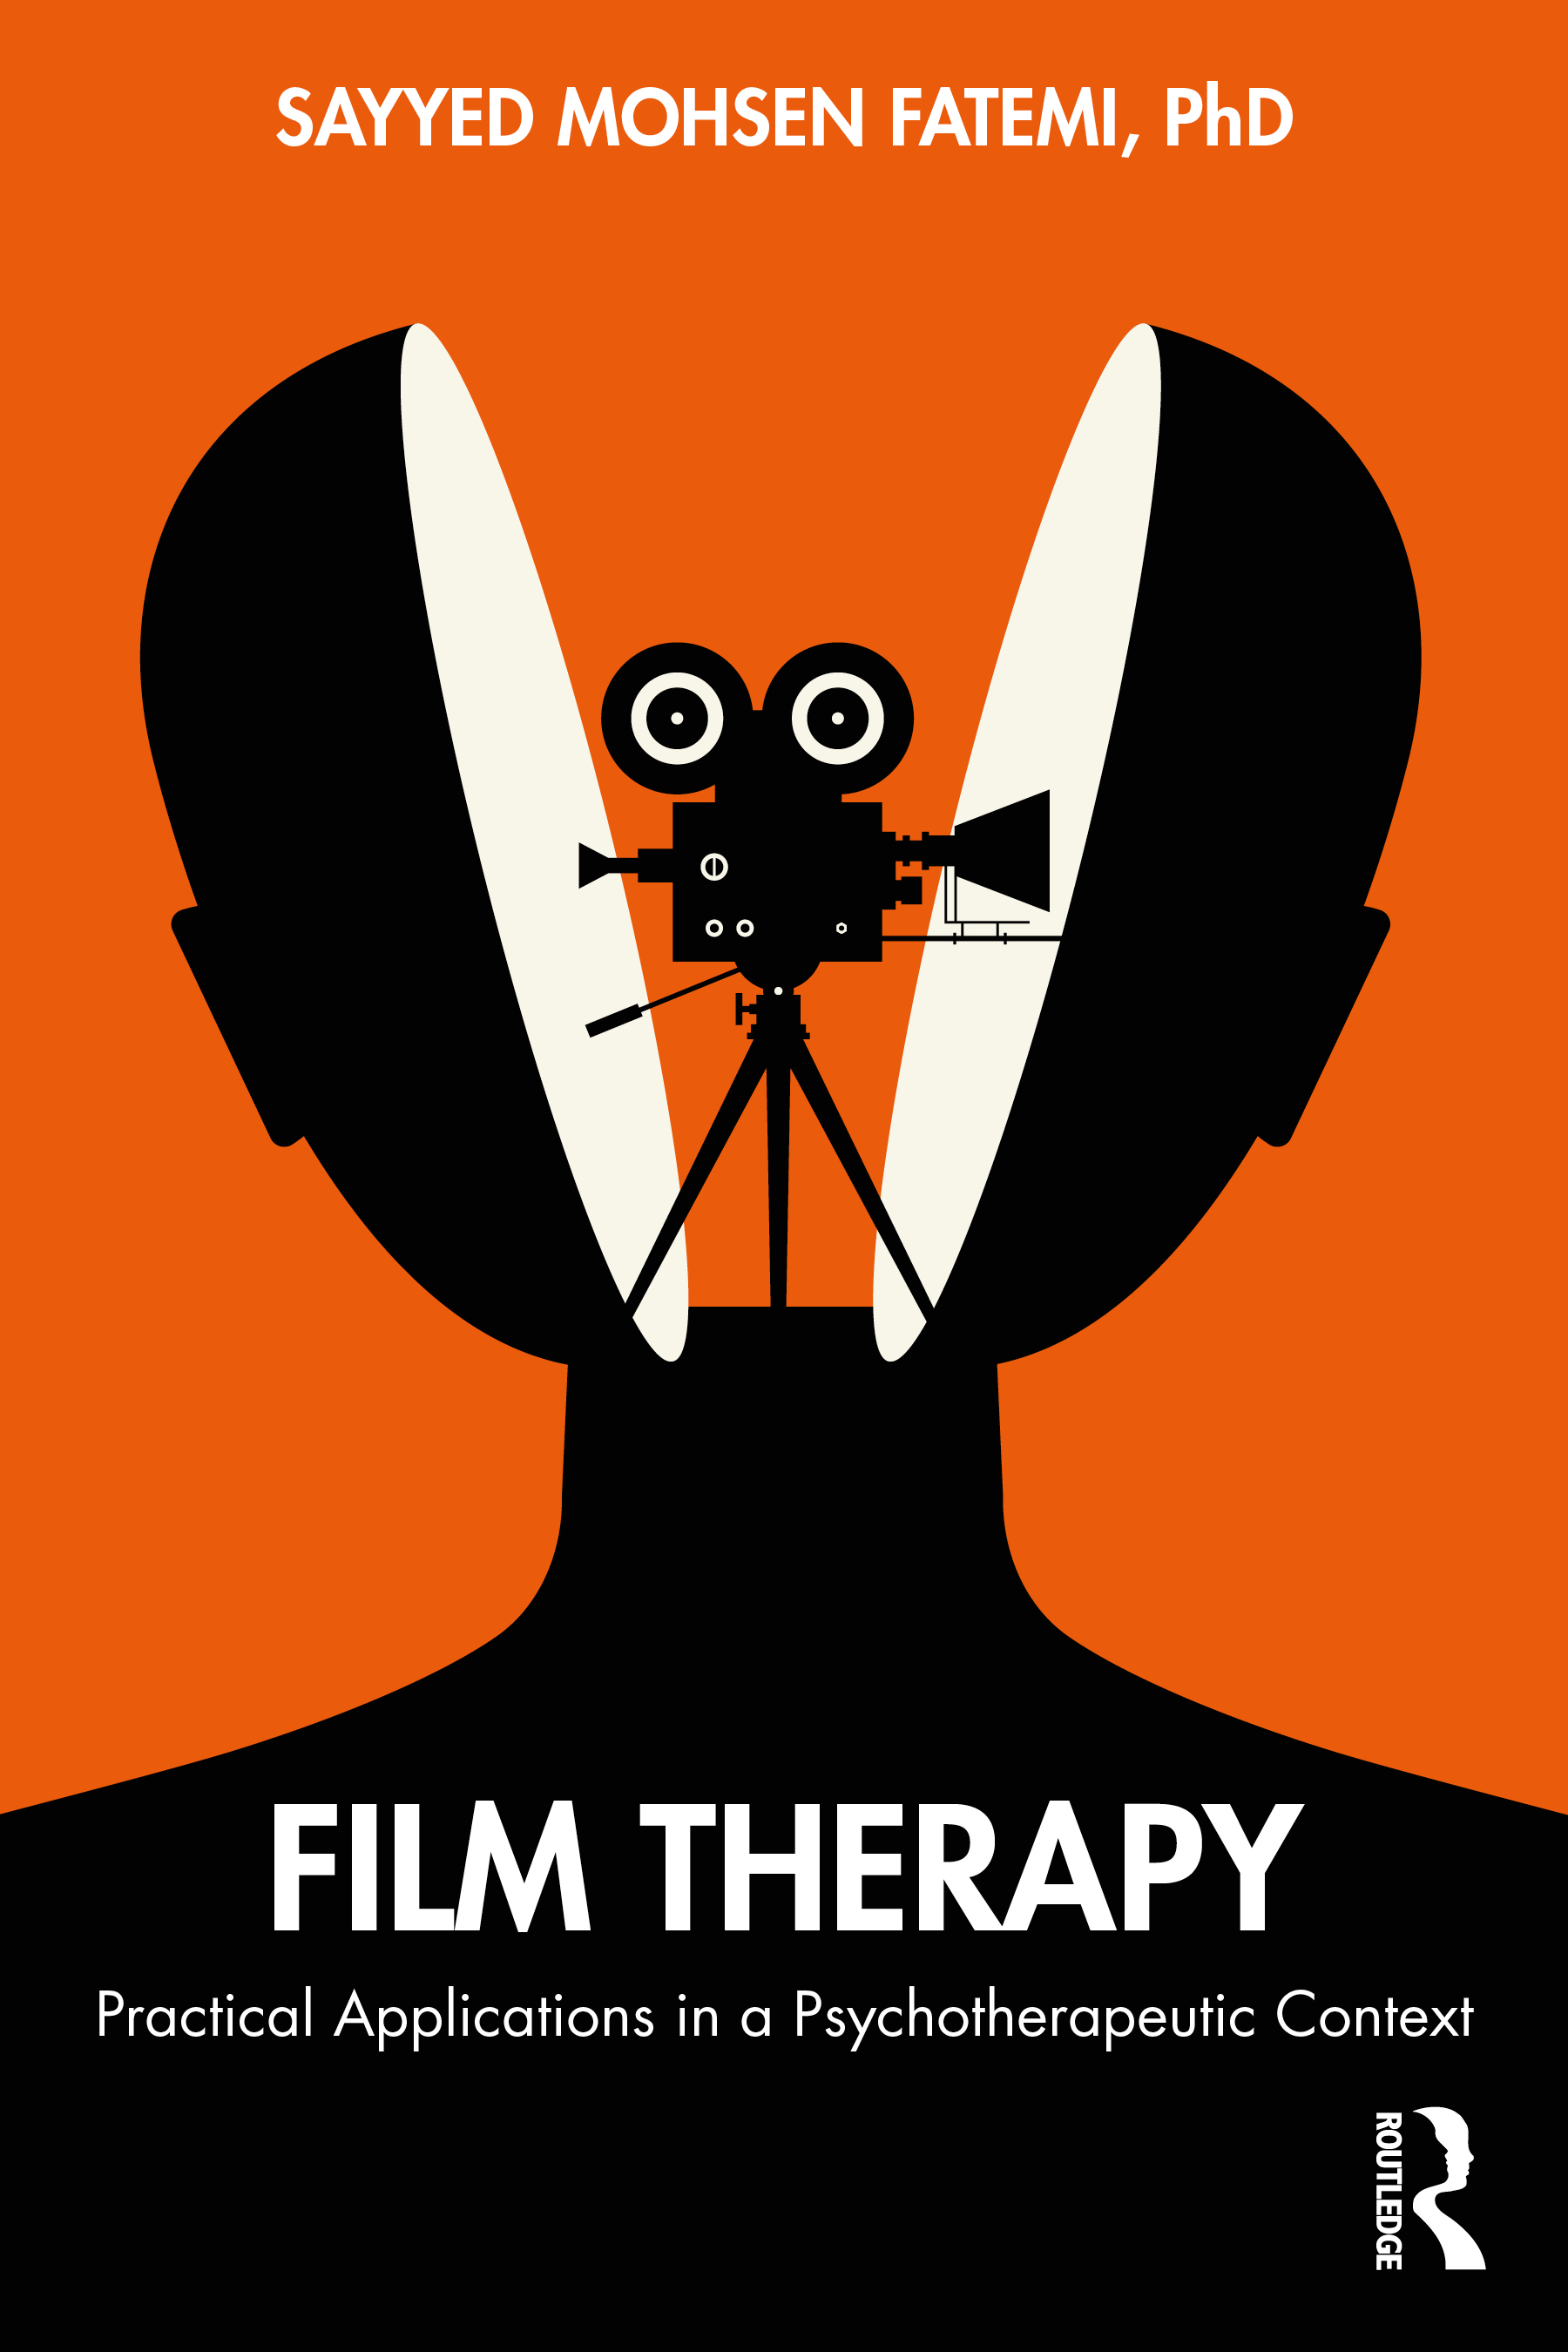 Film Therapy: Practical Applications in a Psychotherapeutic Context book cover